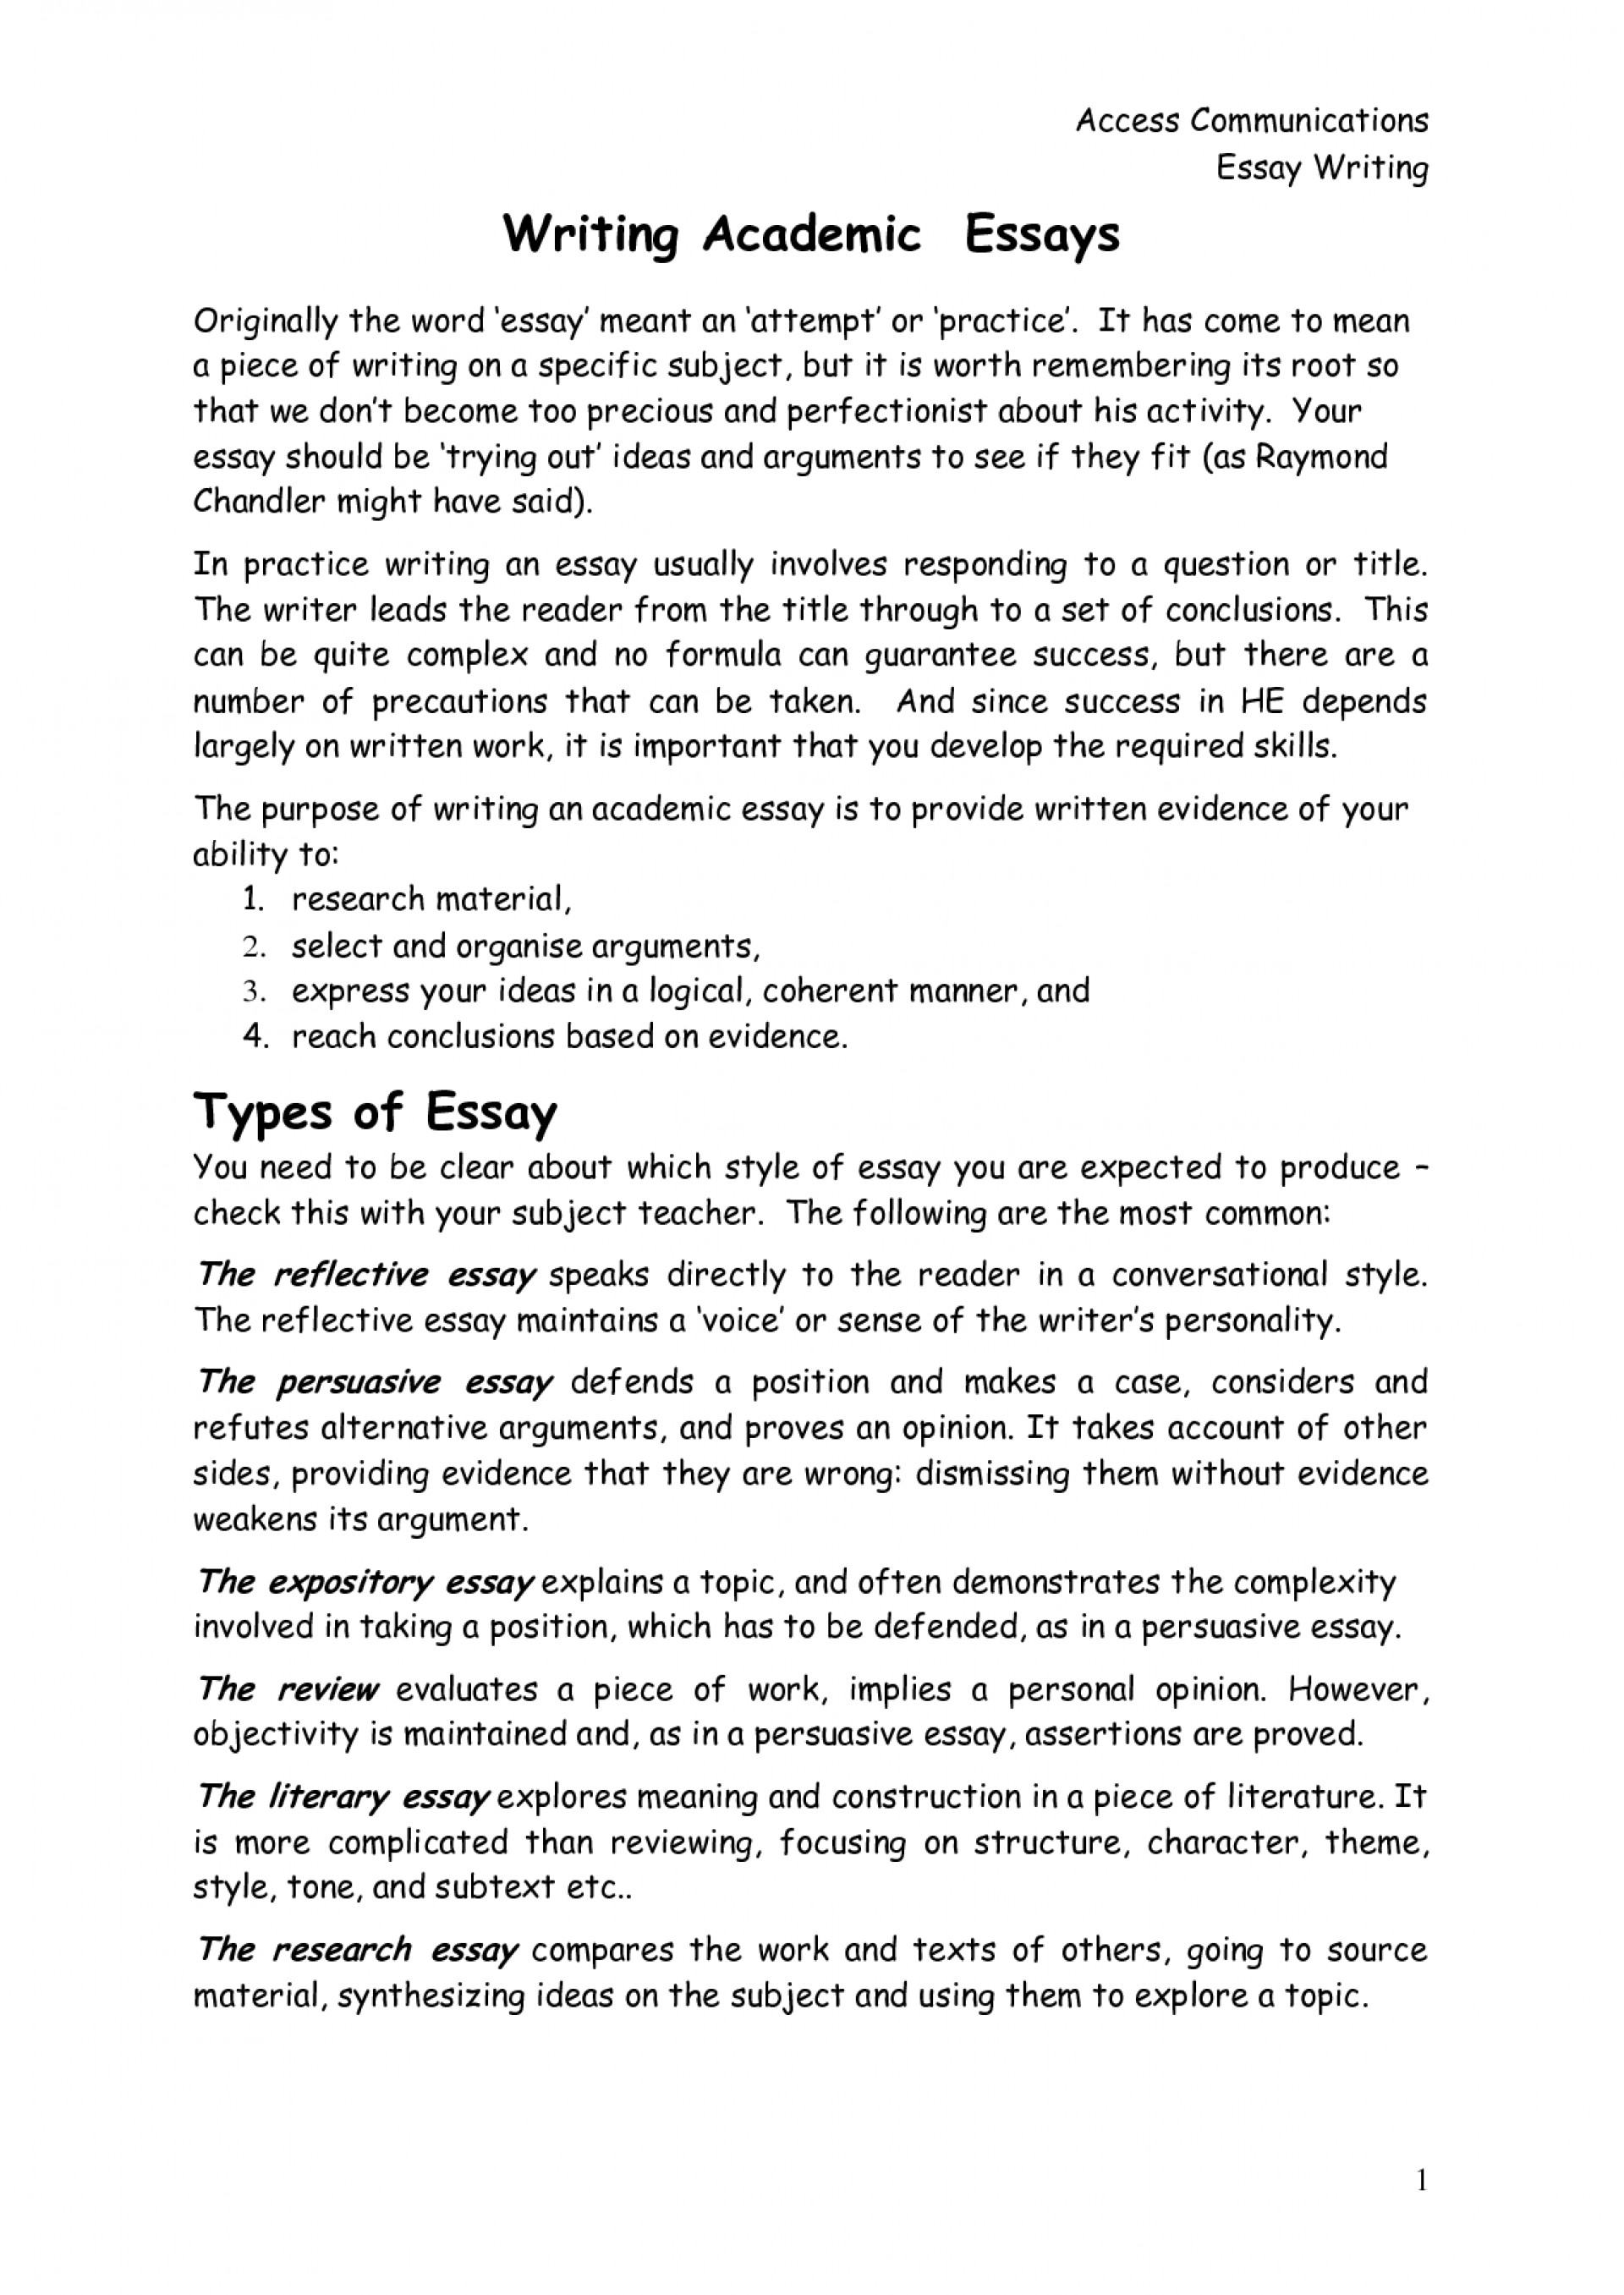 016 Reflective Essay On Academic Writings Beautiful Examples Sample Pdf About Writing English 101 1920